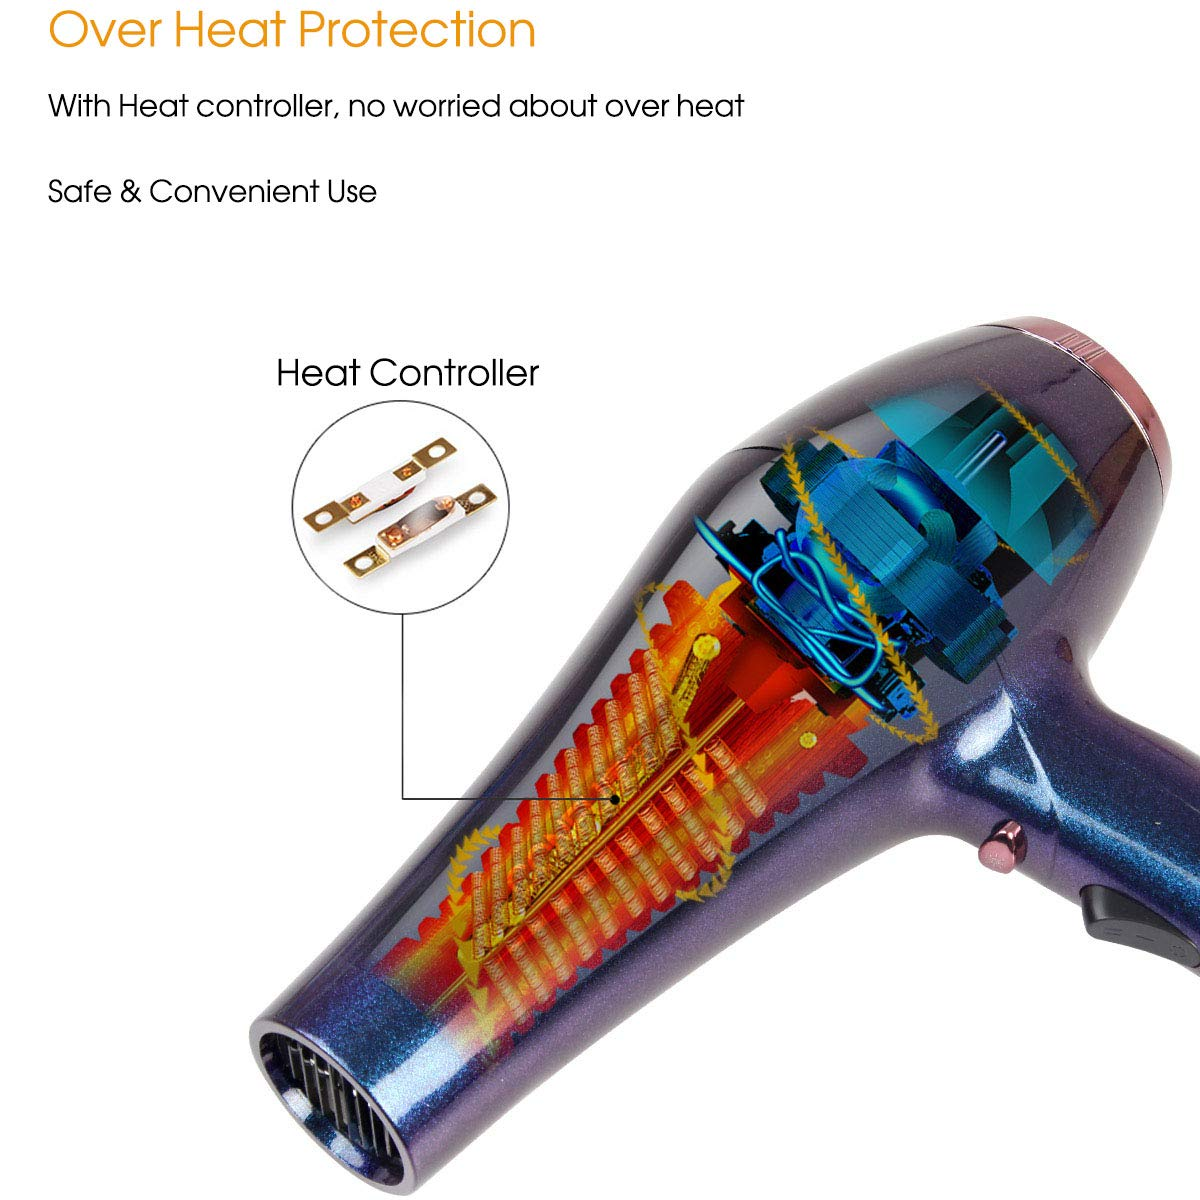 CONFU Professional Hair Dryer, 1875W Negative Ionic Hair Blow Dryer Fast Drying with 2 Speed & 3 Heat Setting, AC Motor with Diffuser, Comb & 2 Concentrator,ETL Certified by CONFU (Image #4)